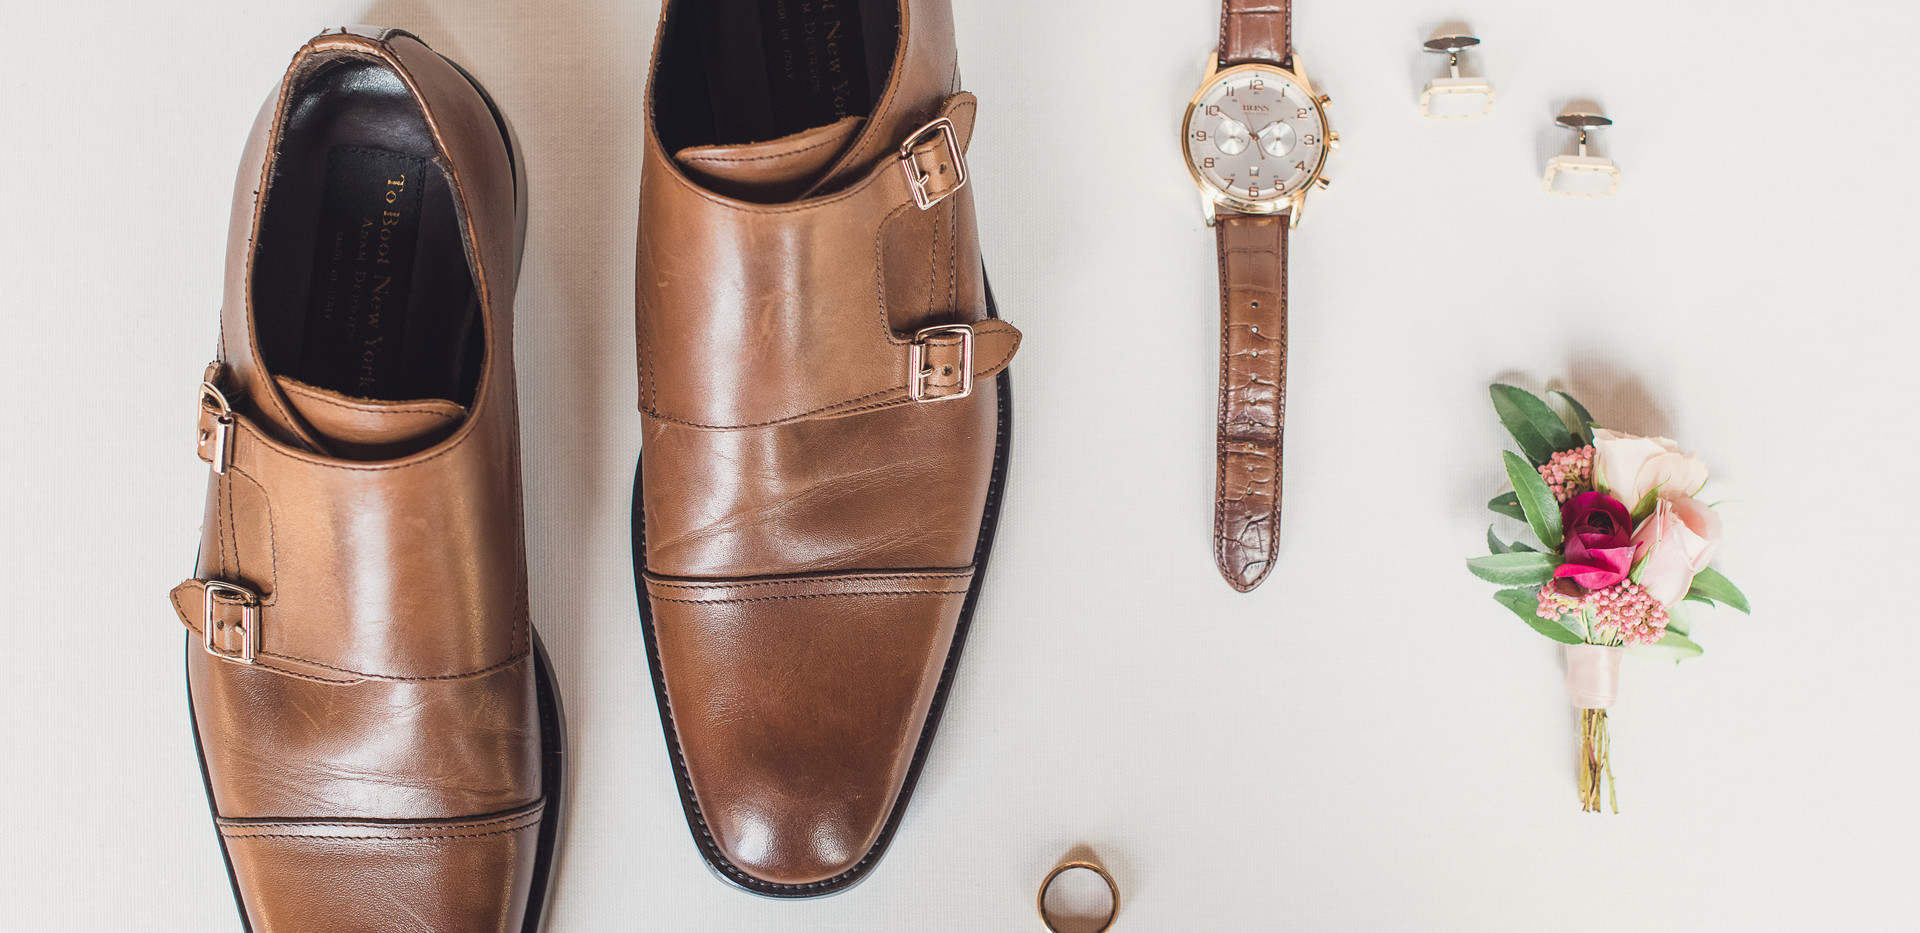 Groom's Classic Wedding Day Details